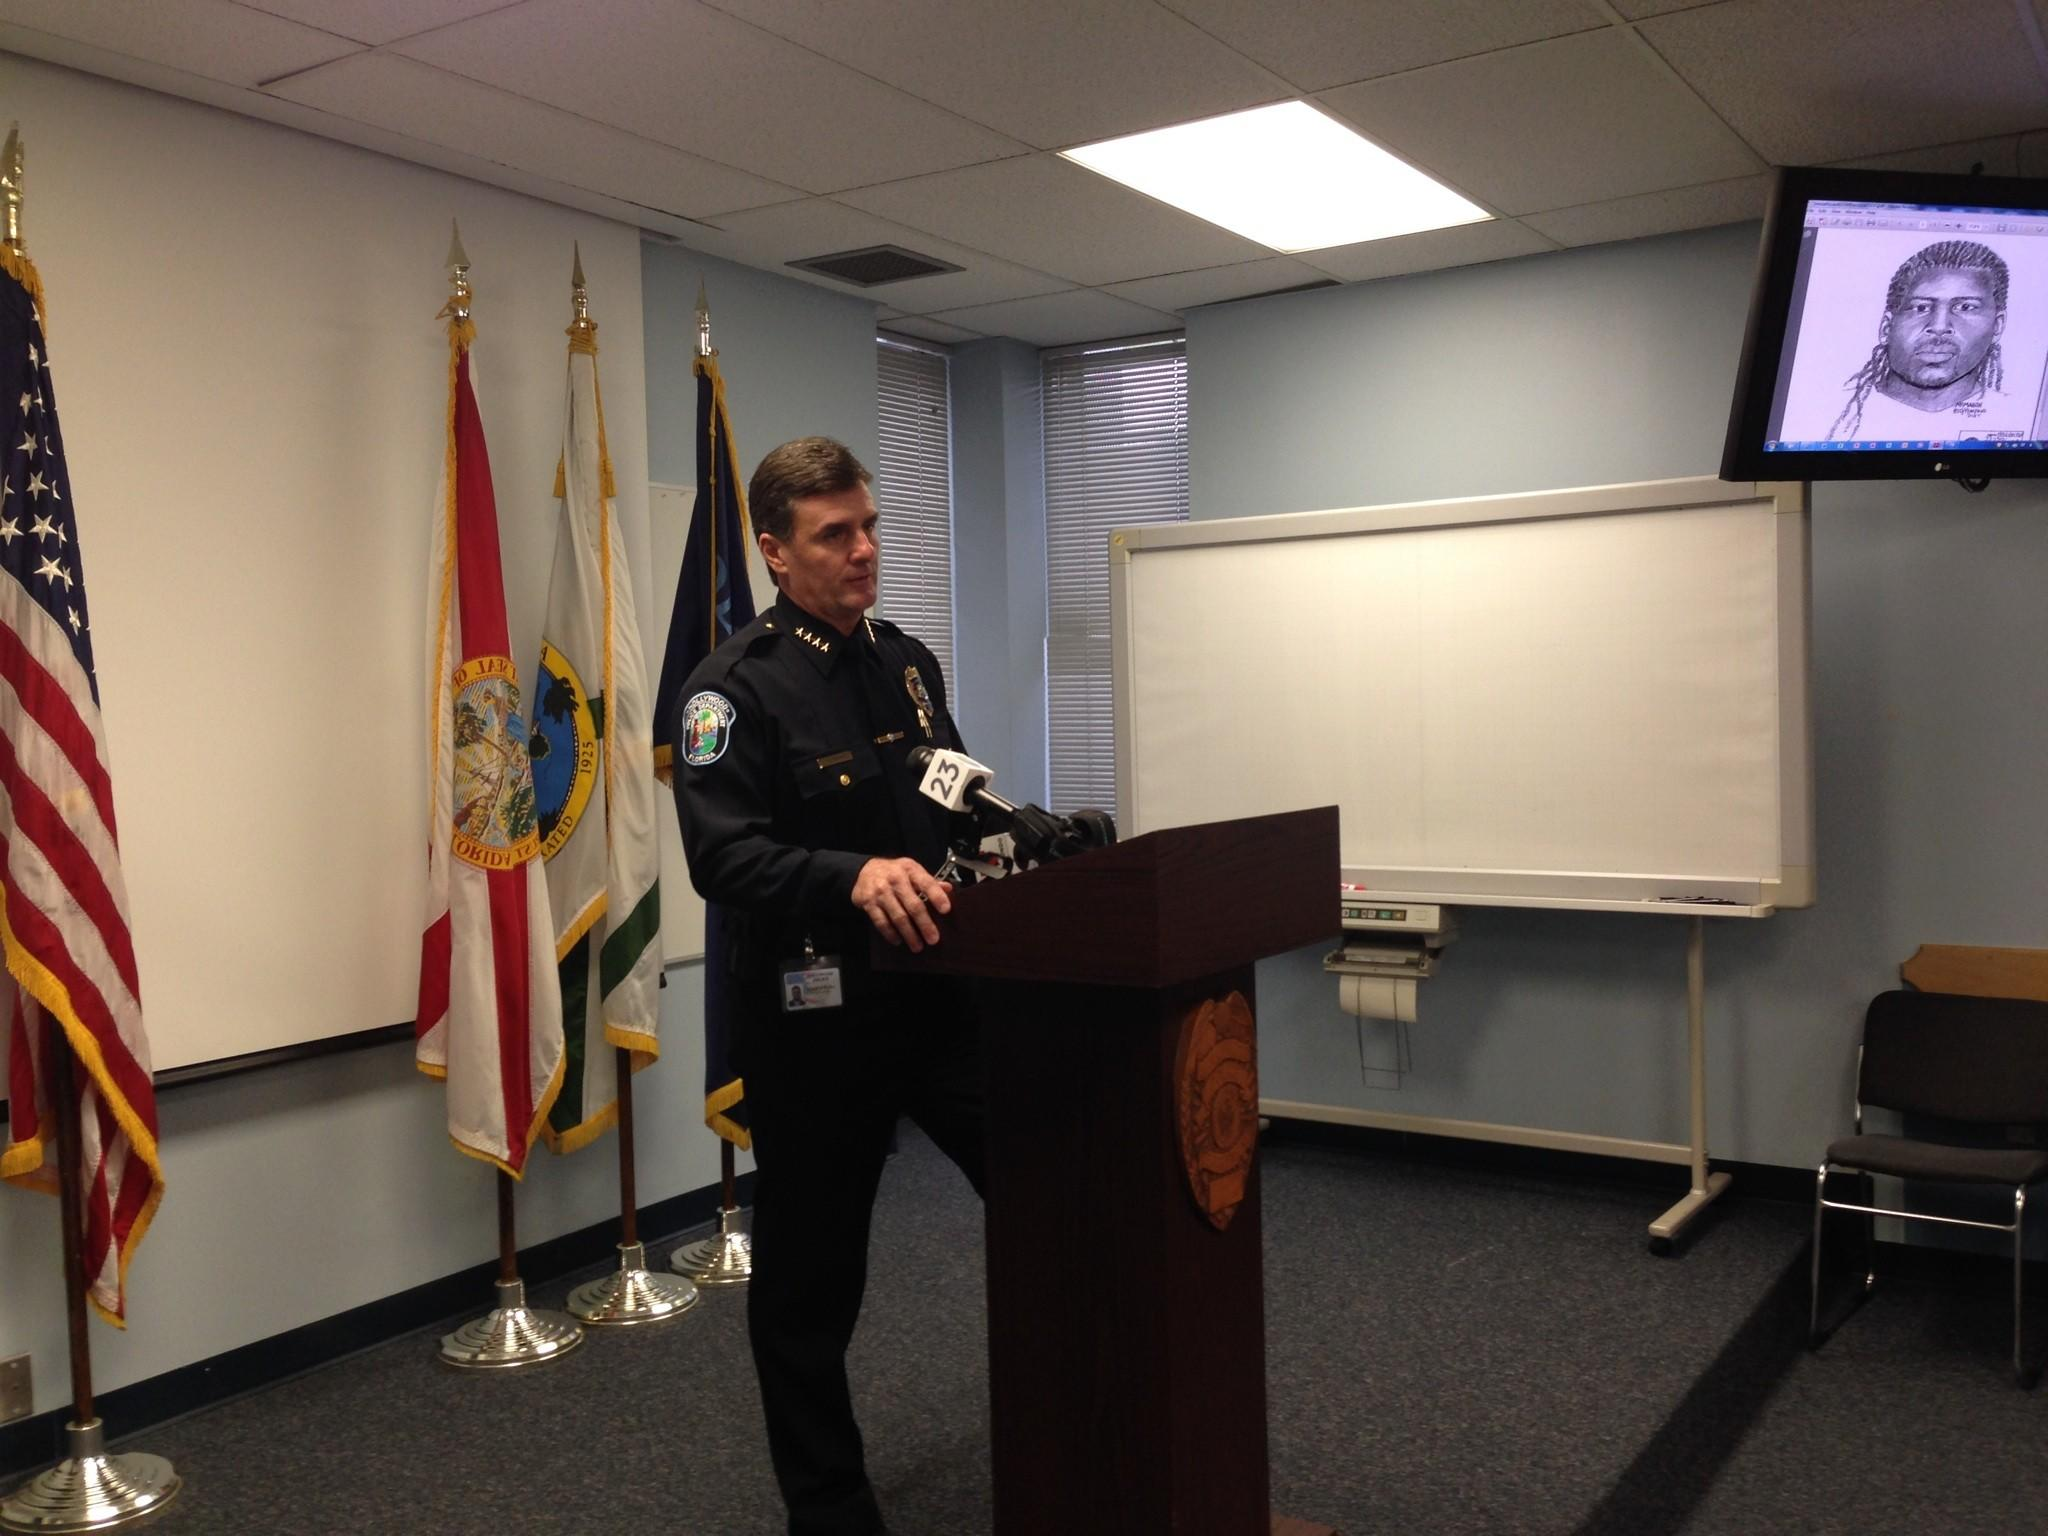 Hollywood Police Chief Frank Fernandez says anonymous tips from the community helped police track down a man accused of raping a Hollywood teen on Dec. 21. The chief, speaking Friday at a press conference, praised both the tipsters and detectives.